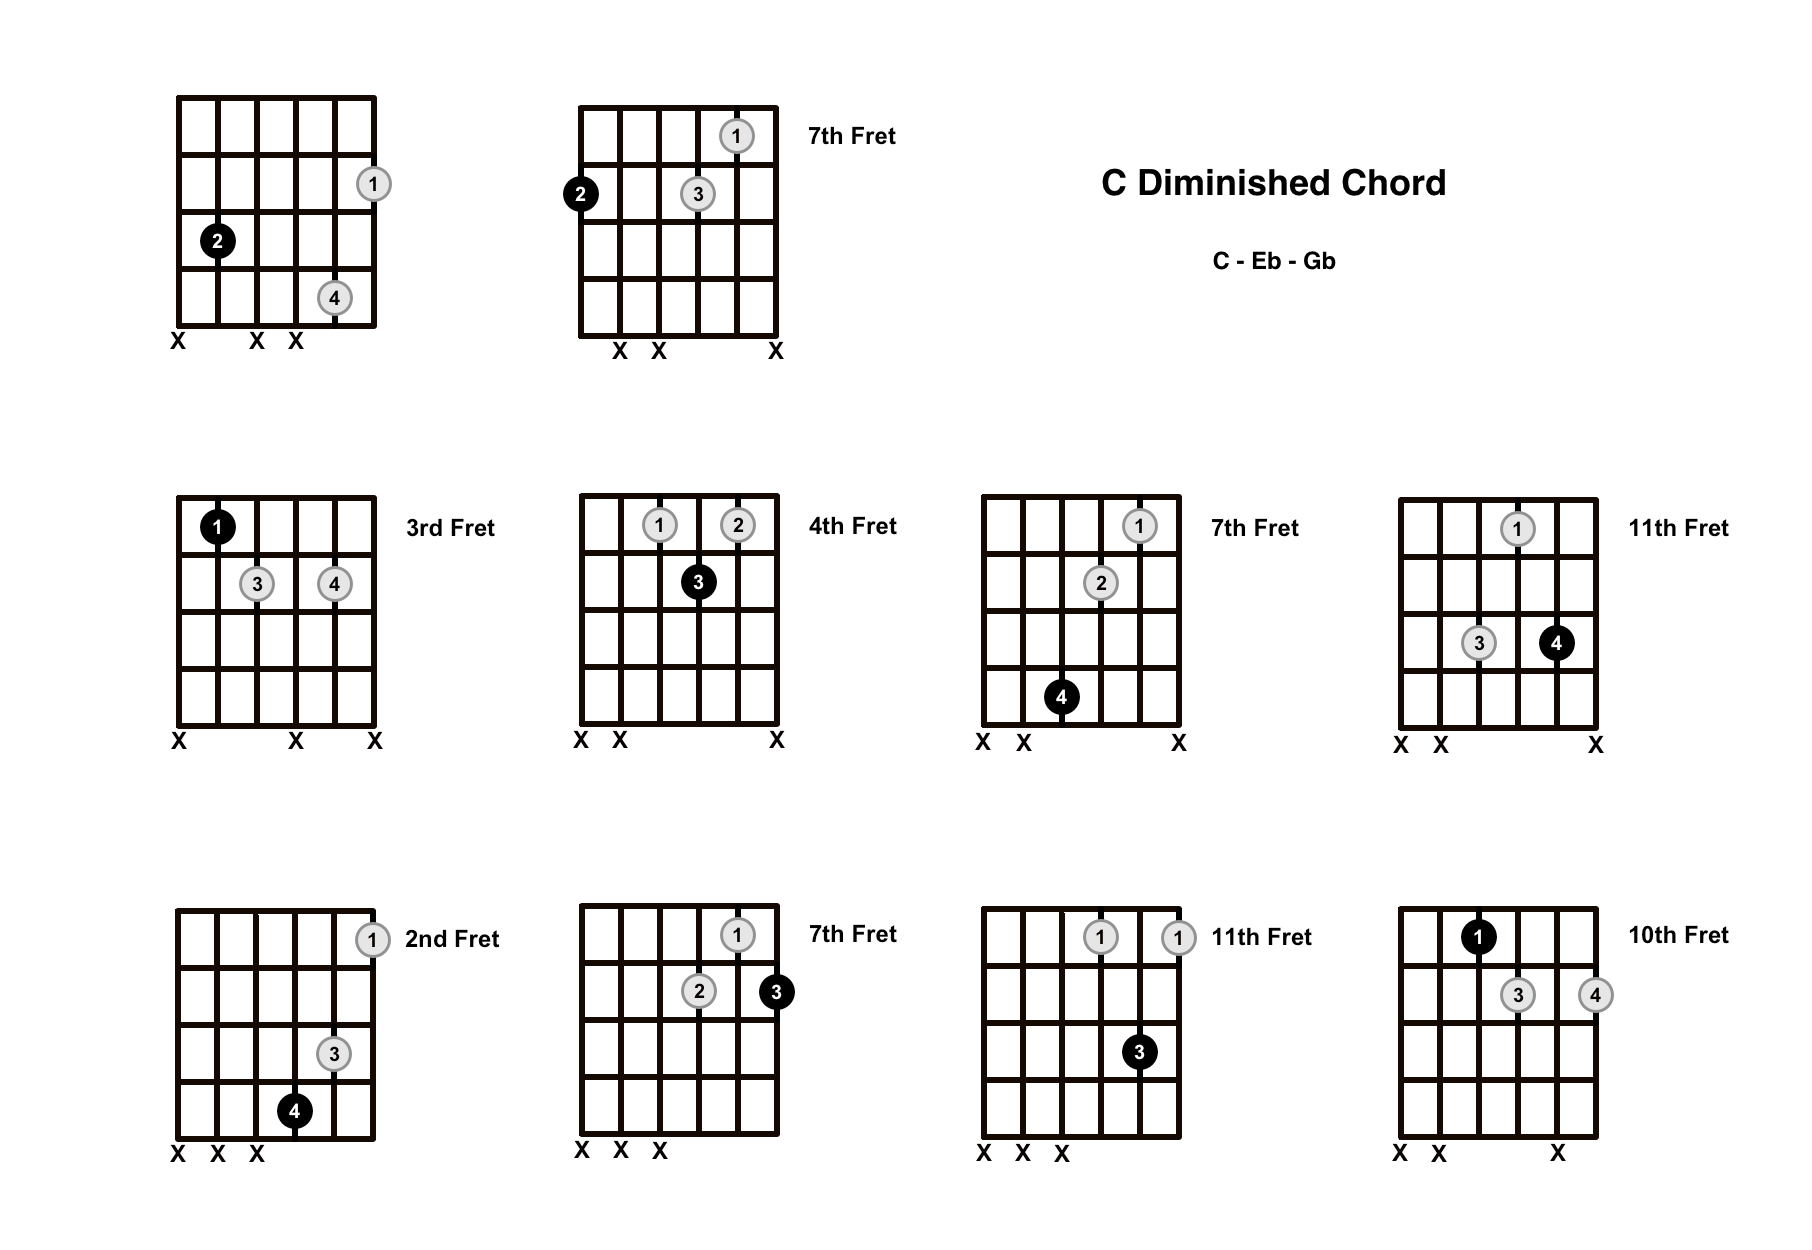 C Diminished Chord on the Guitar (C dim) – Diagrams, Finger Positions, Theory